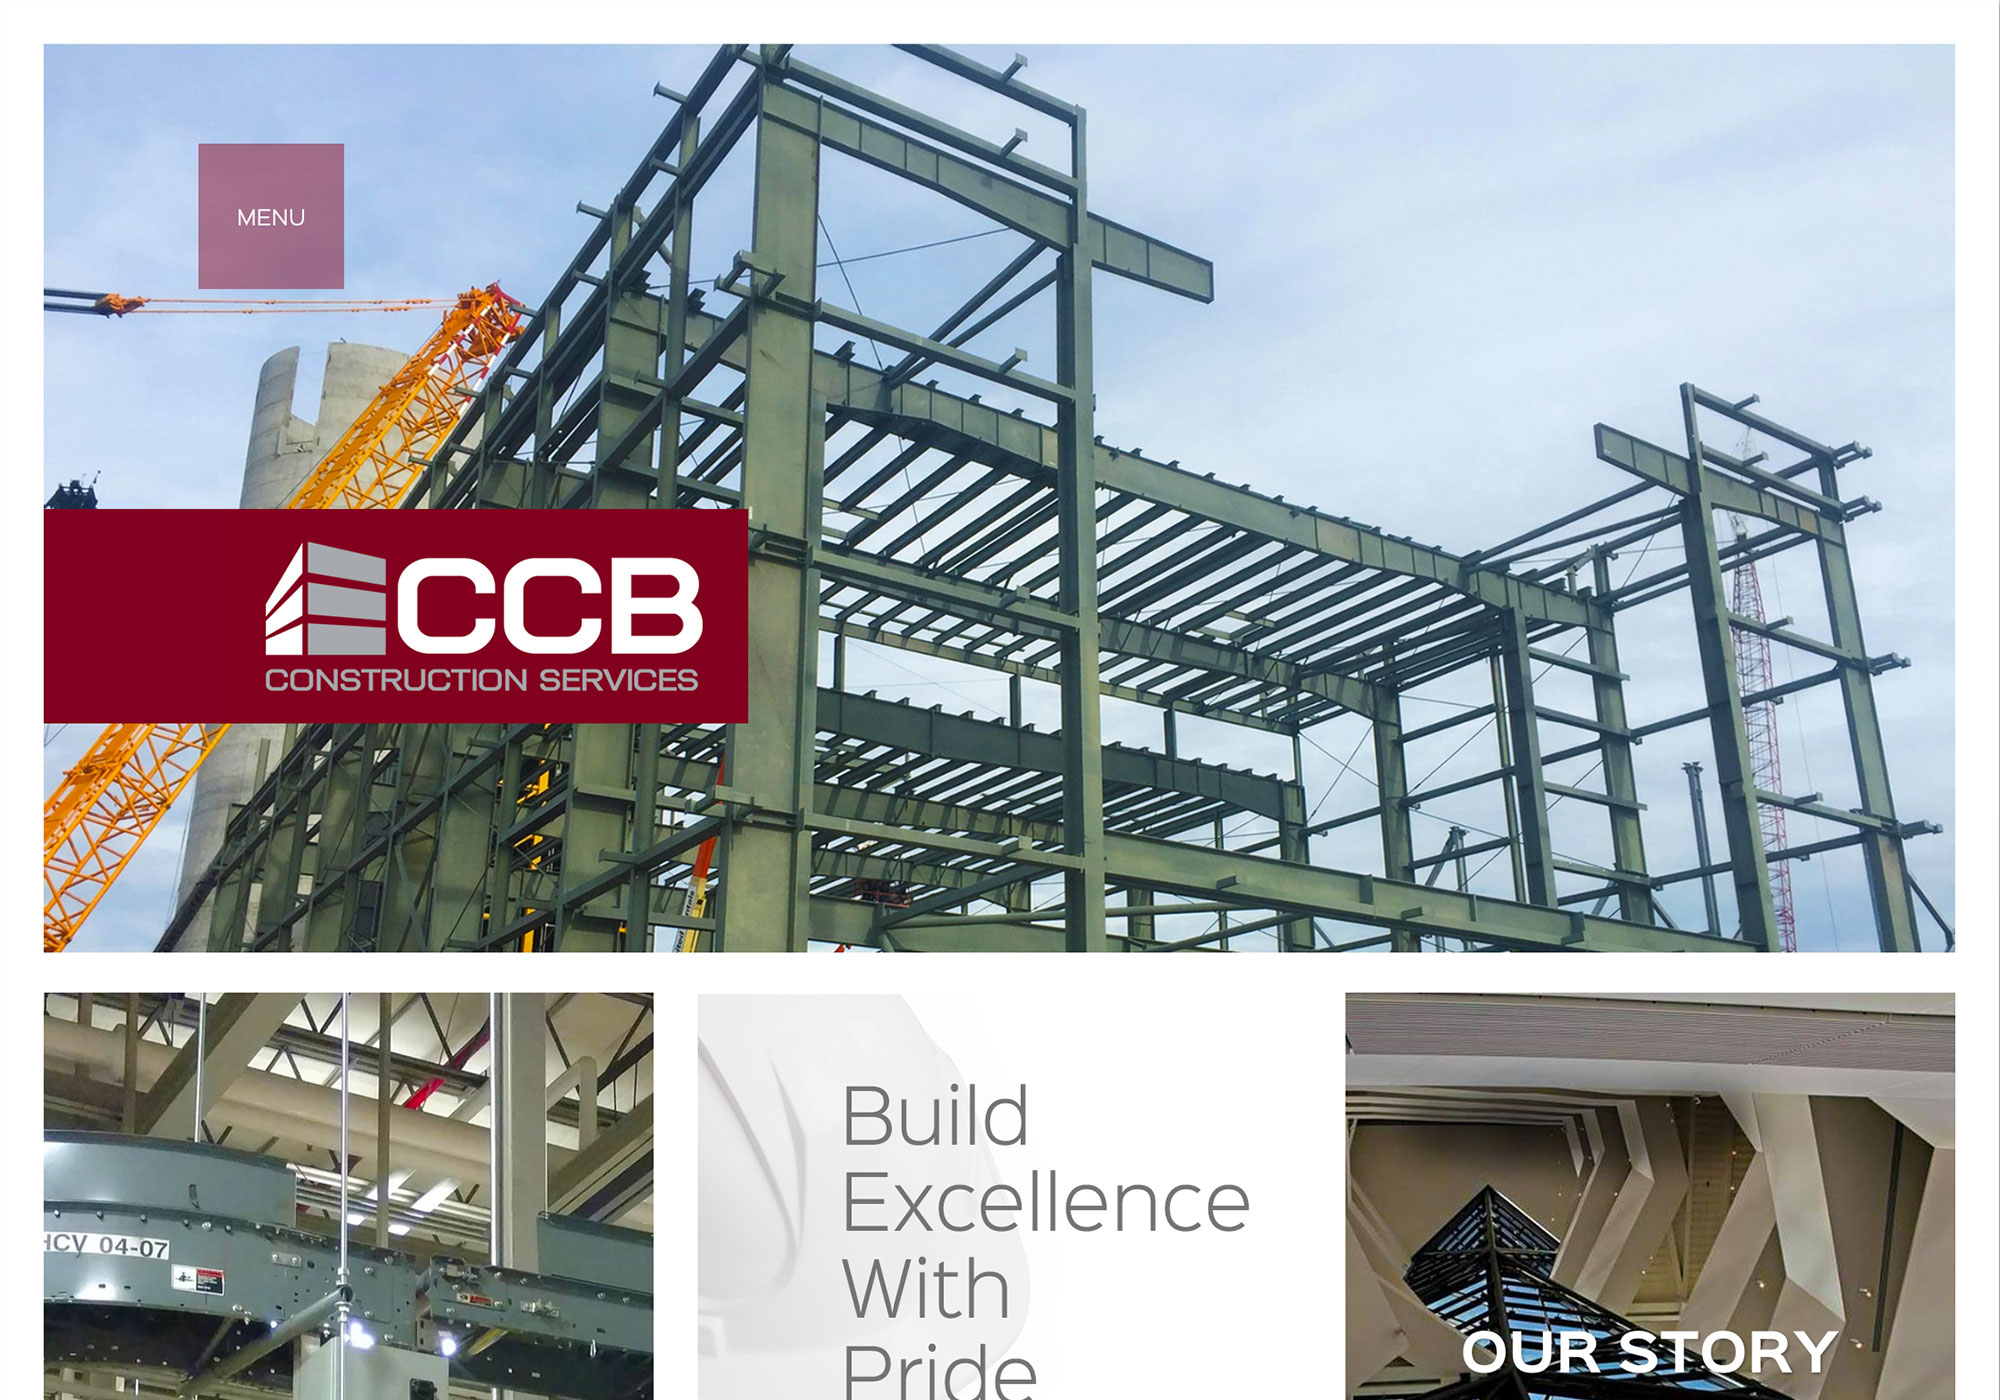 A screenshot of the SlickFish Studios designed and developed website for CCB Construction Services Inc.